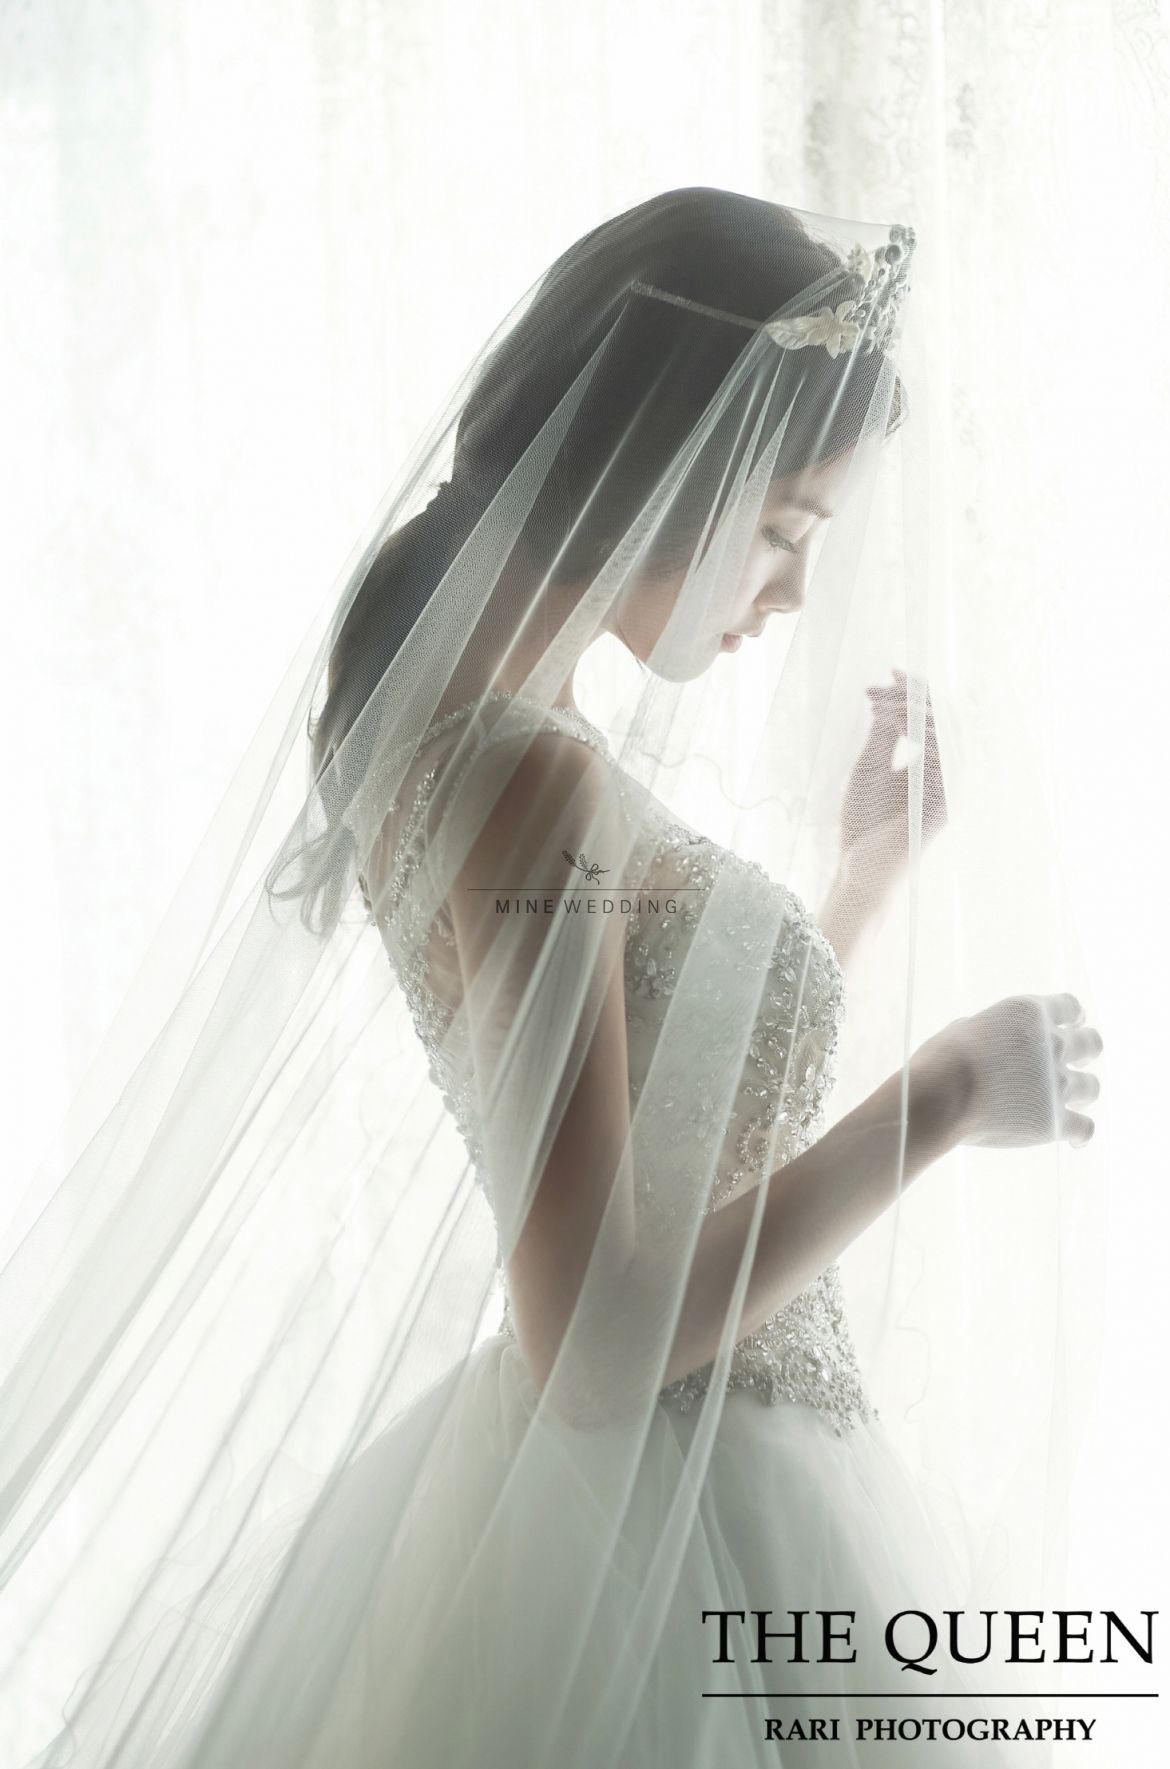 Pin by 蓝信摄影 on 韩式婚纱 in pinterest wedding wedding